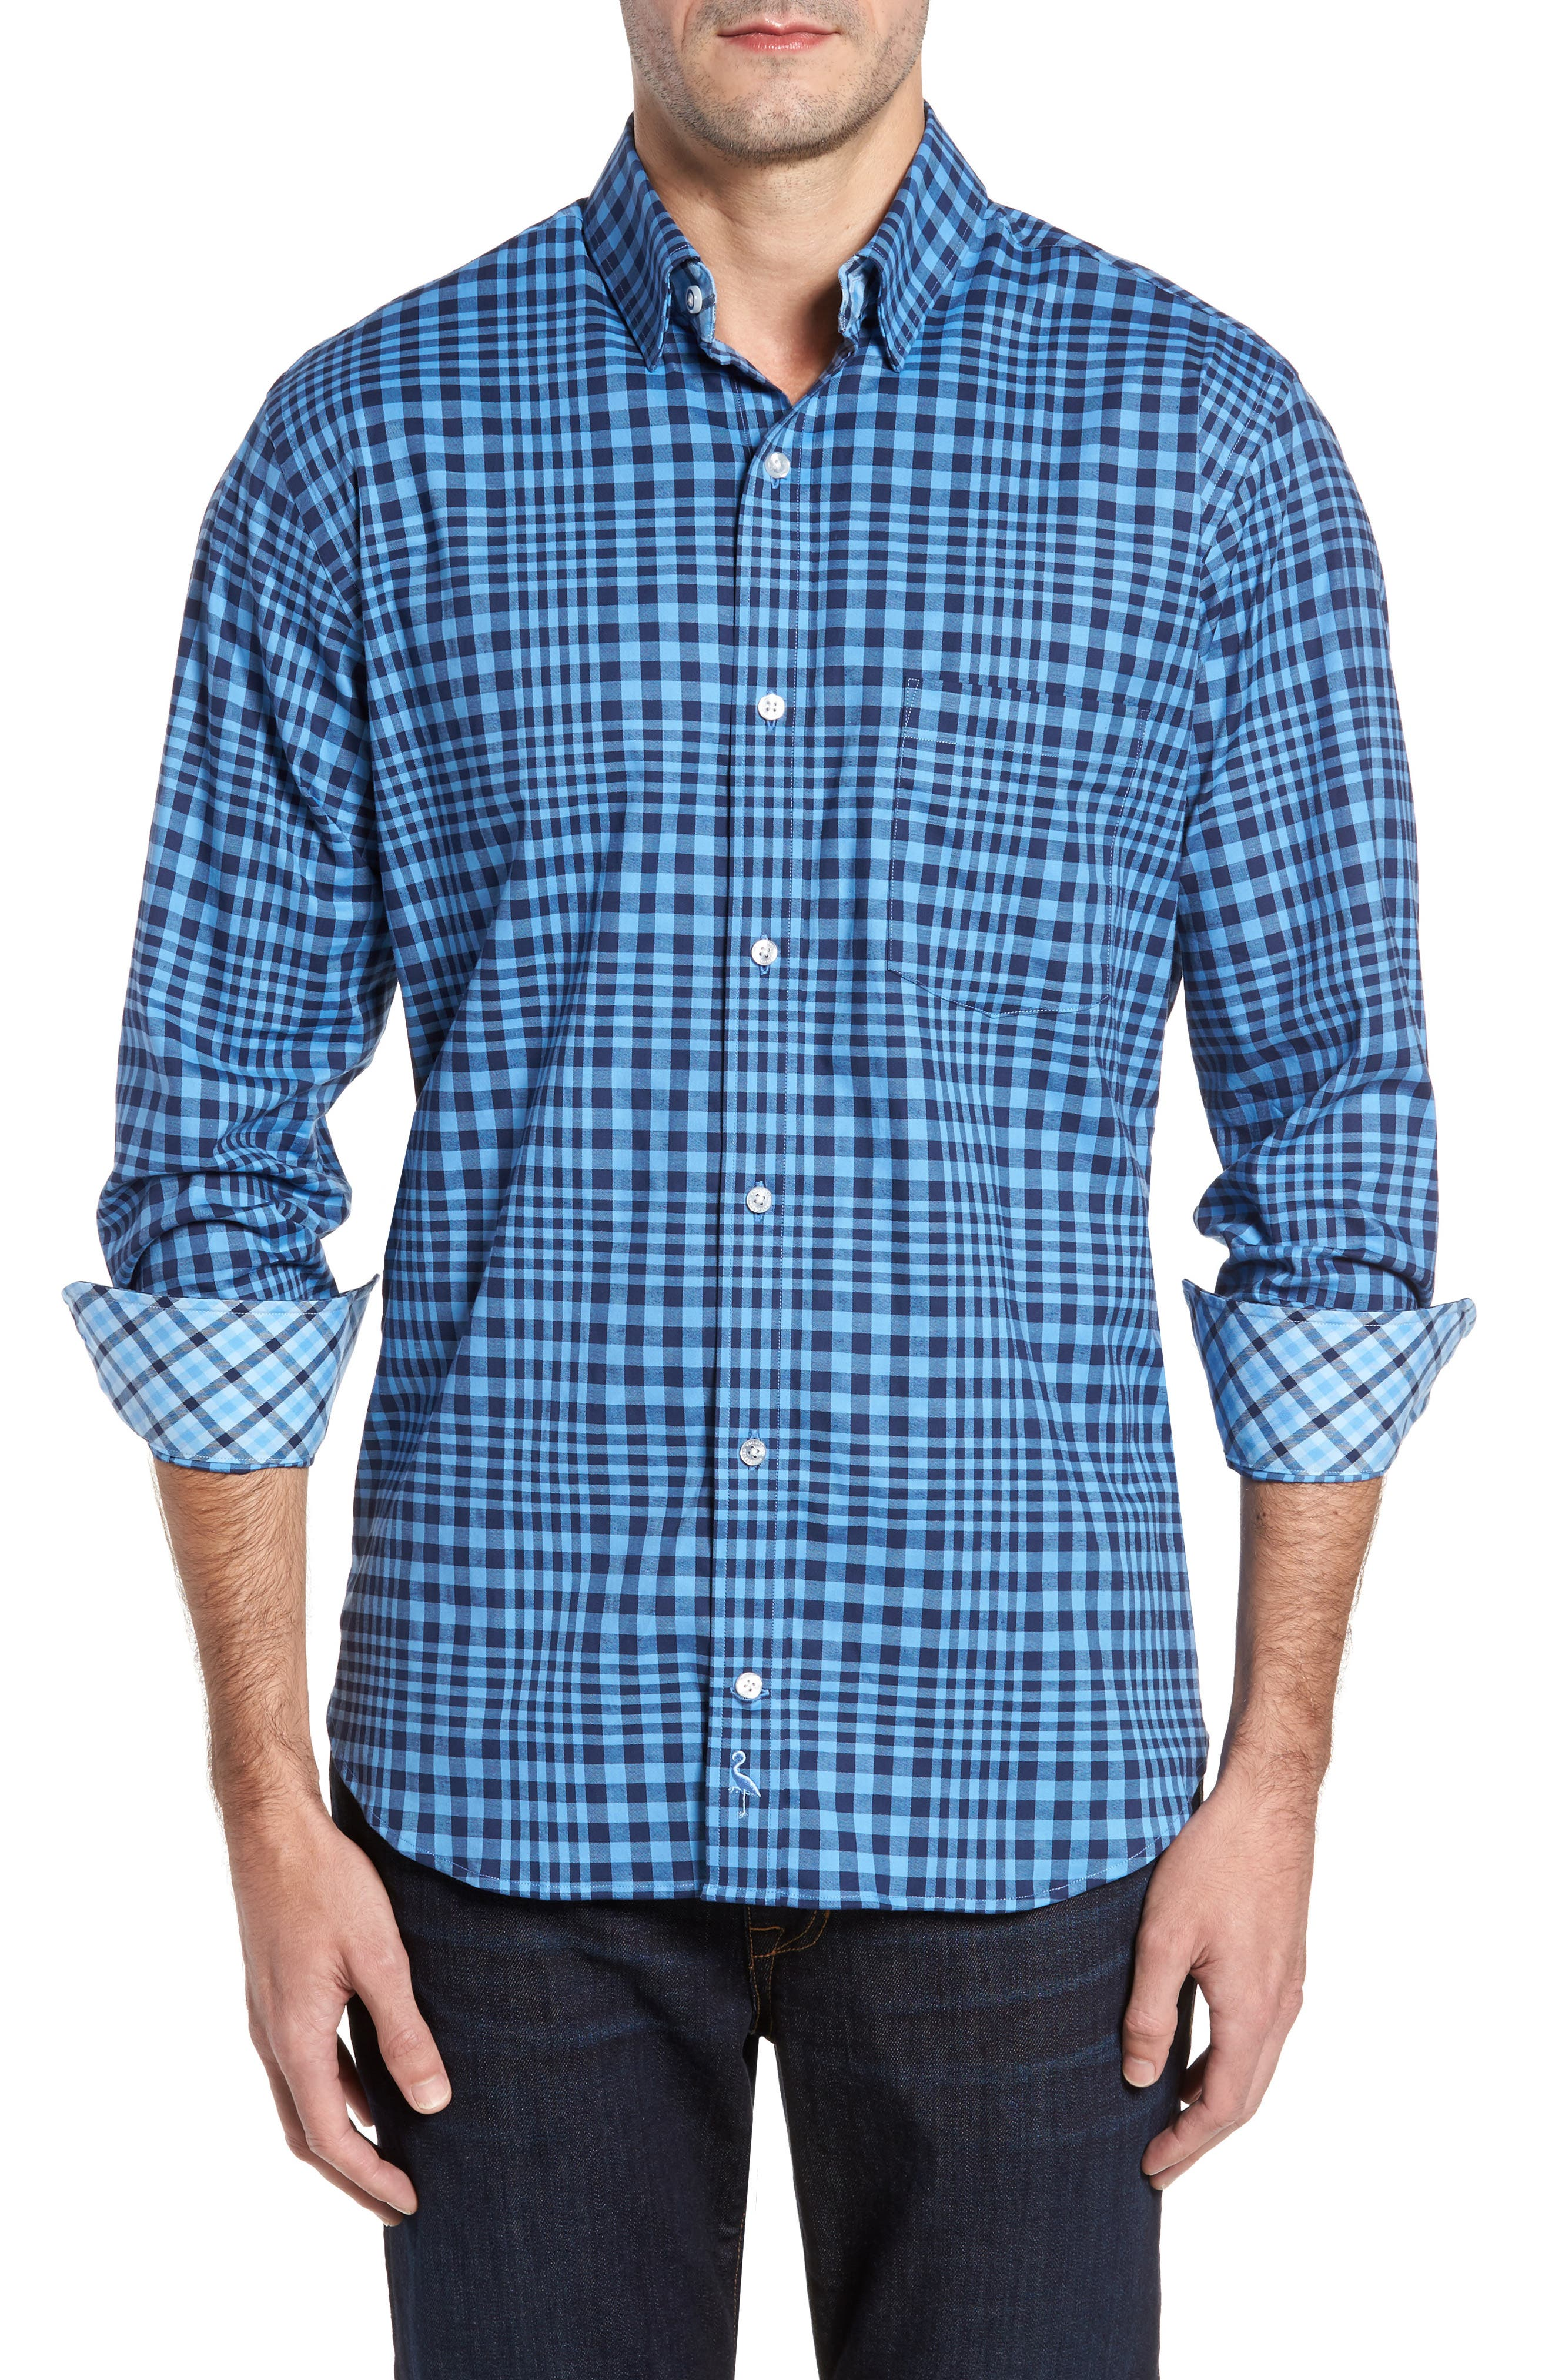 Main Image - TailorByrd Bayou Cone Check Sport Shirt